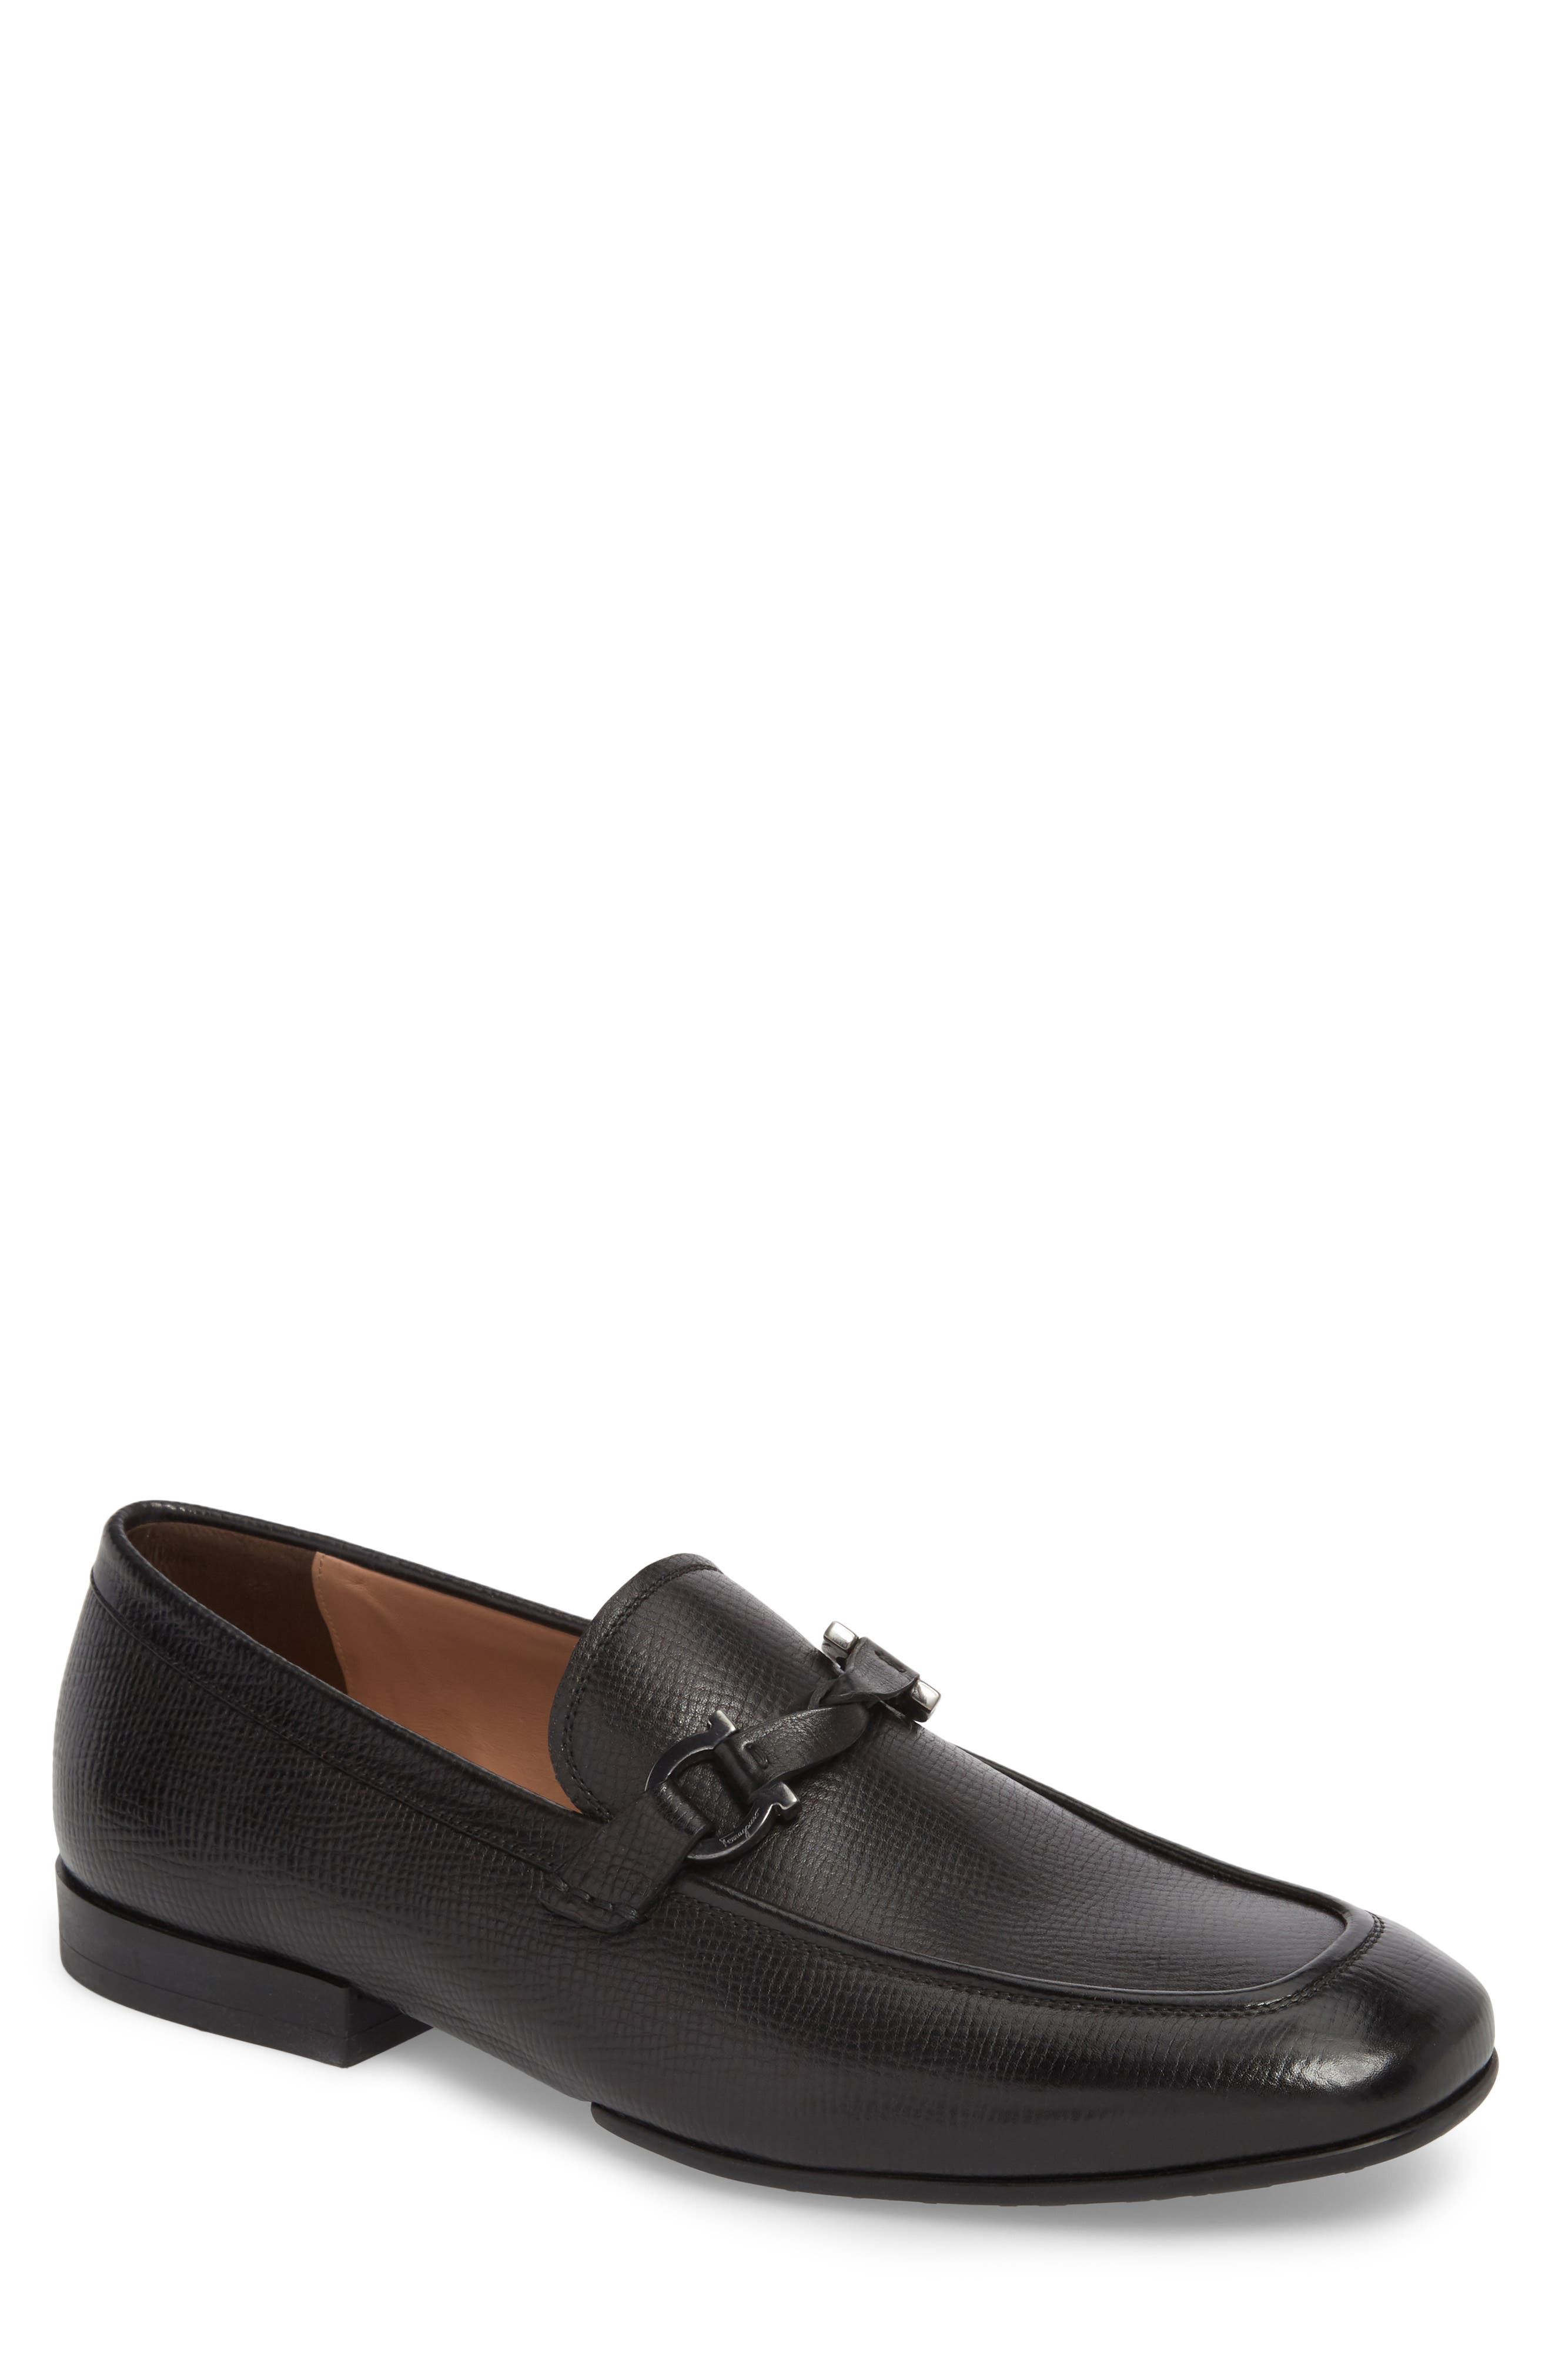 Barry Looped Bit Loafer,                         Main,                         color, NERO LEATHER